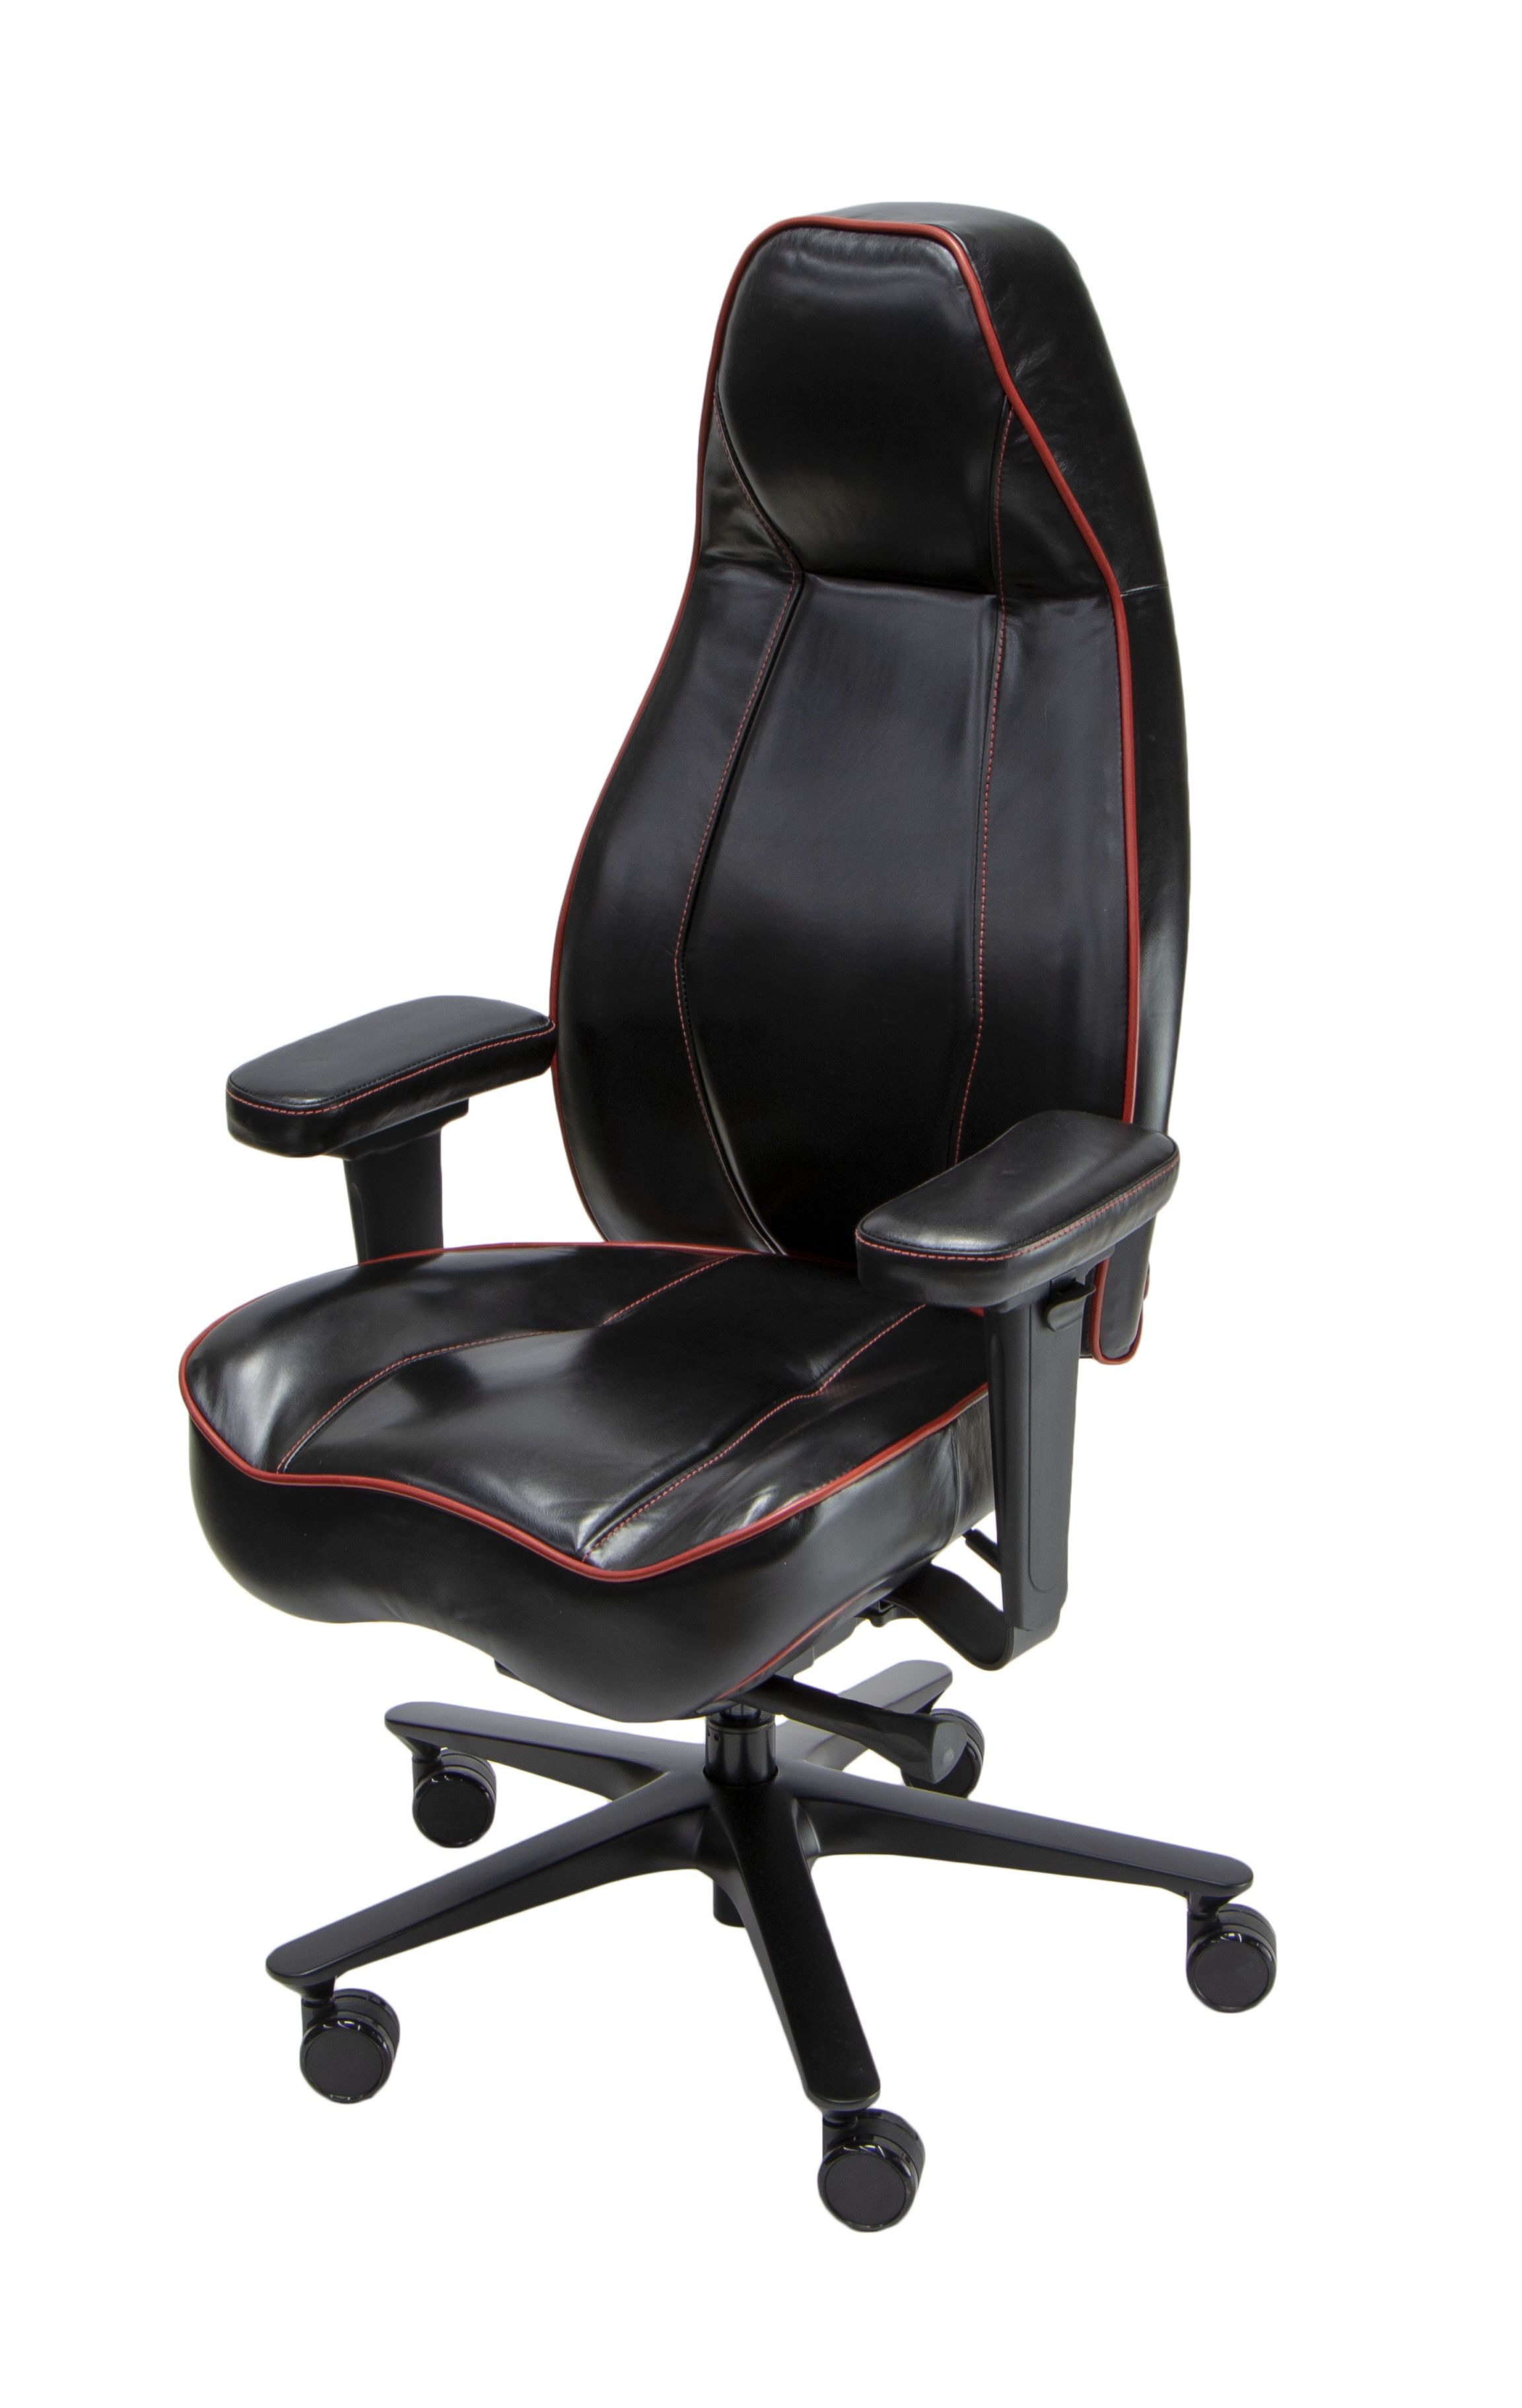 Lifeform Legacy Executive Chair Premium Leather With Contrast Piping And Sching Detail Fully Customizable